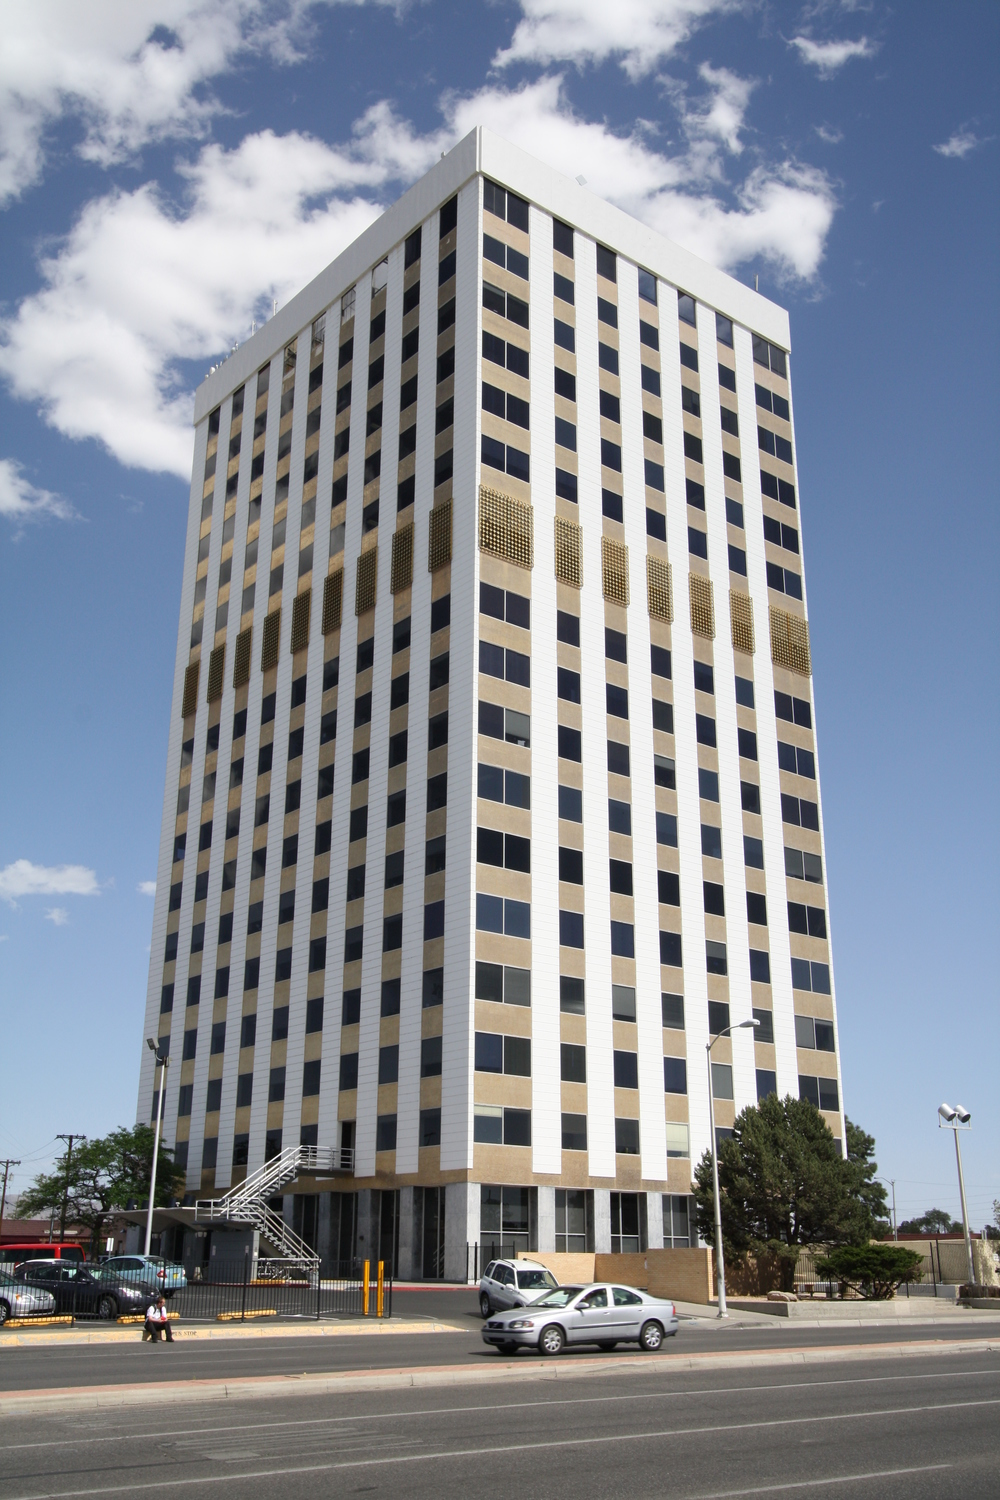 Bank of the West Tower - Albuquerque, NM - Built in 1963 - 17 Stories - Modernism Style - Commercial Office Use